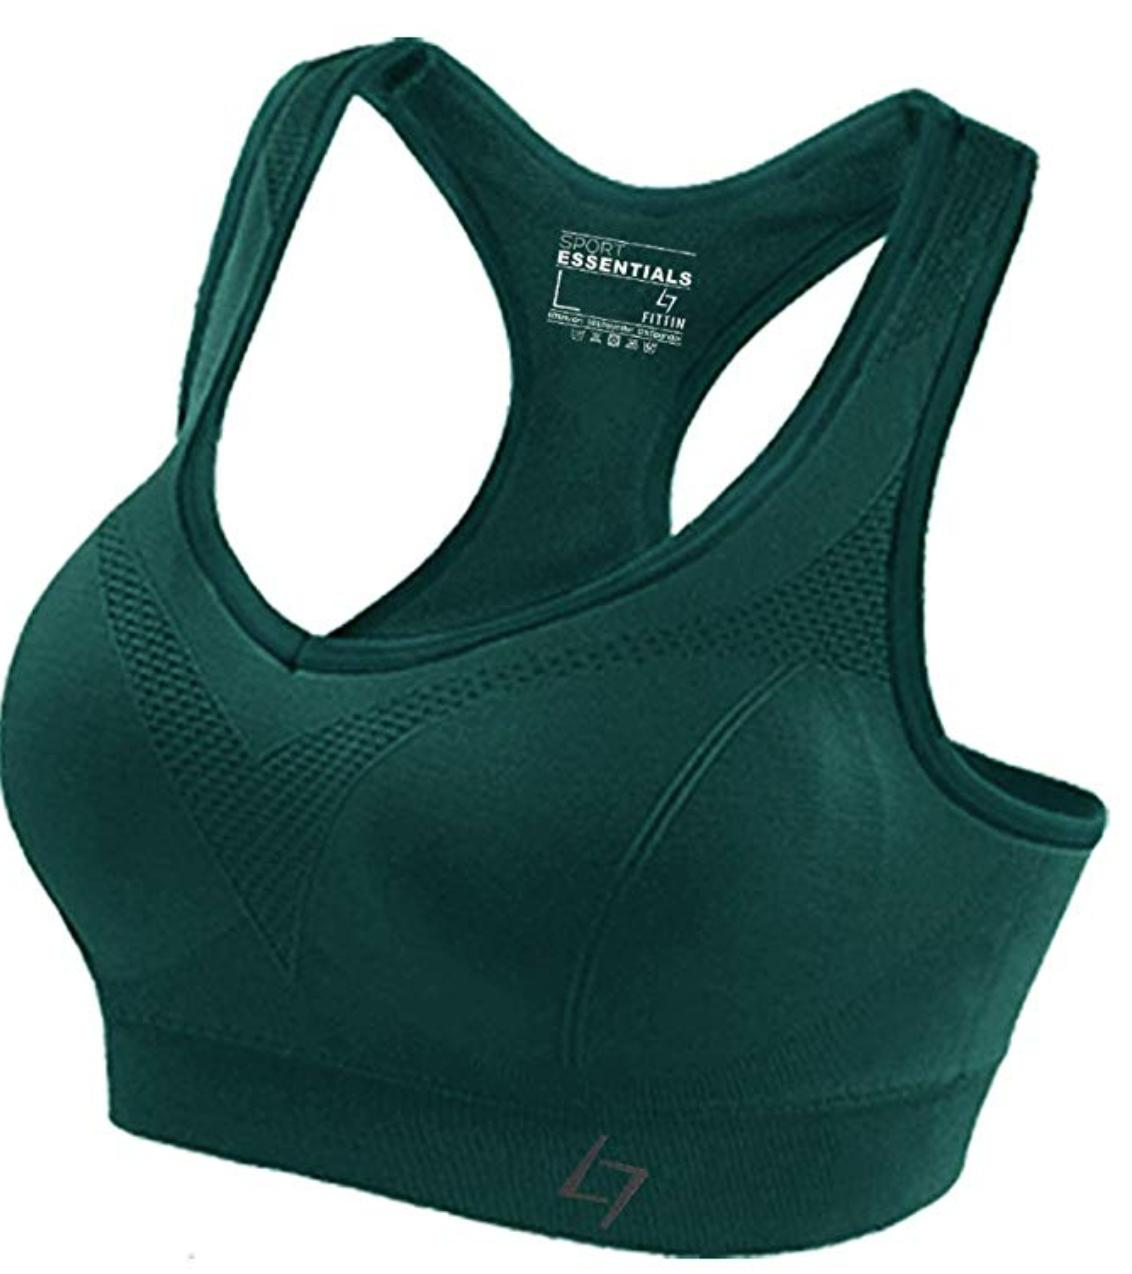 A green racerback sports bra